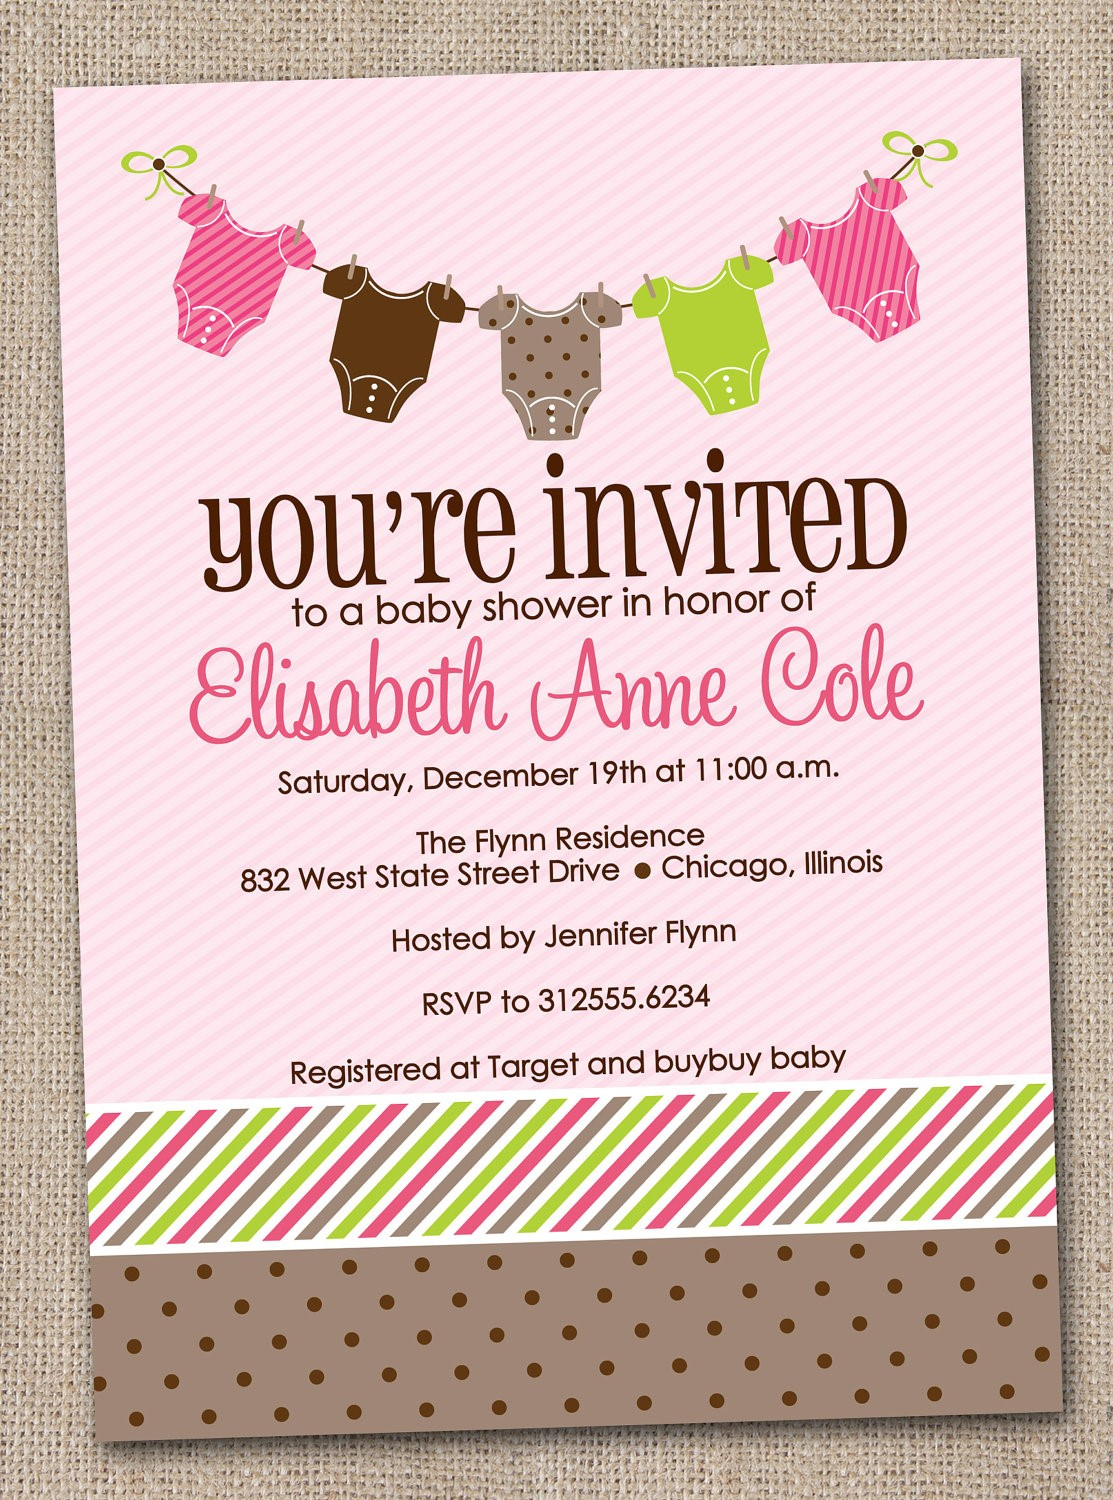 Full Size of Baby Shower:graceful Baby Shower Cards Image Designs Baby Shower Games With Owl Baby Shower Invitations Plus Baby Shower Quilt Together With Couples Baby Shower As Well As Baby Shower Products